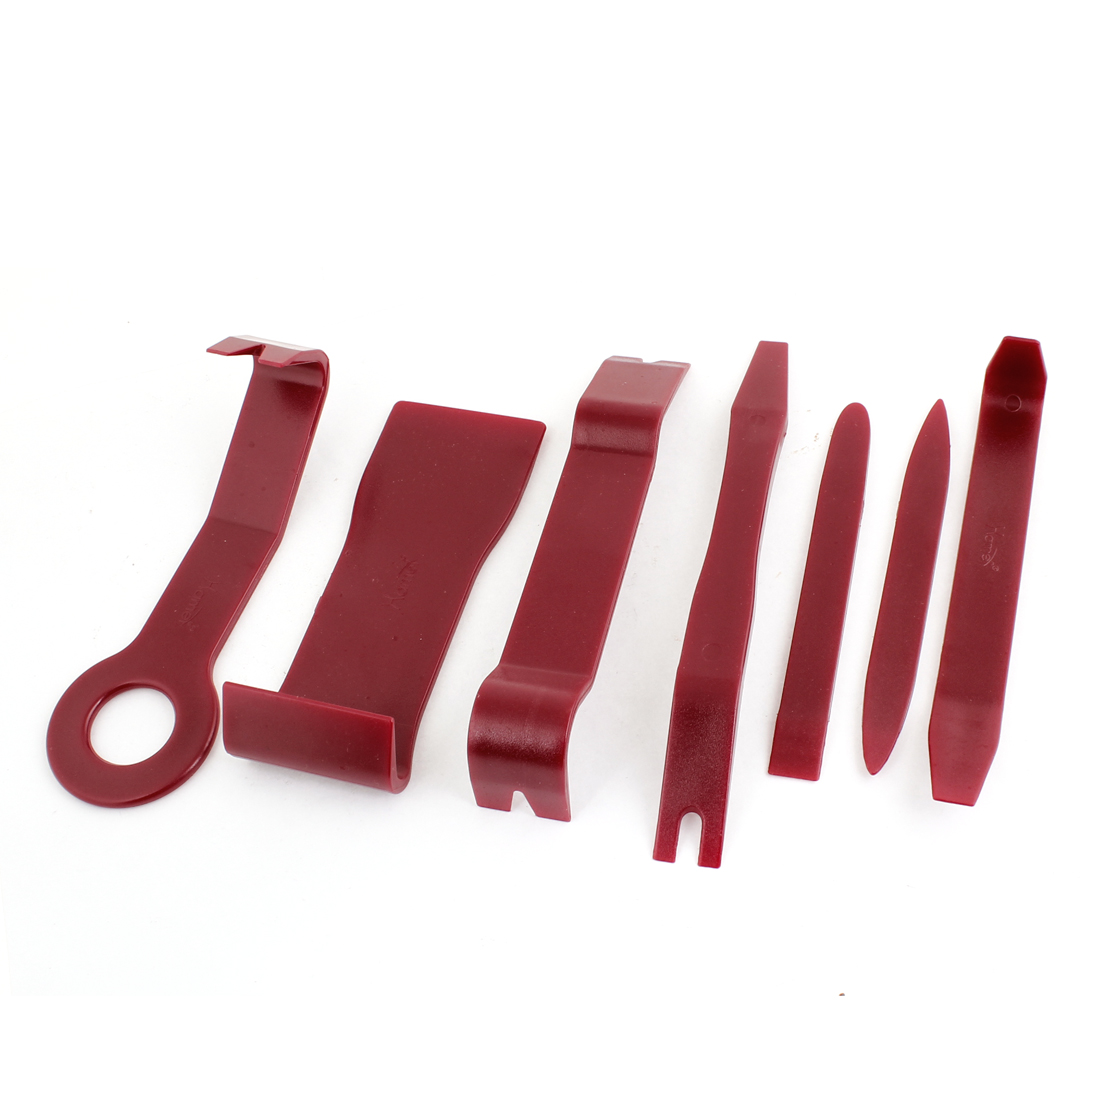 Unique Bargains Burgundy Audio Loudspeaker Repair Removal Dismantle Tools for Van Car 7 Pcs